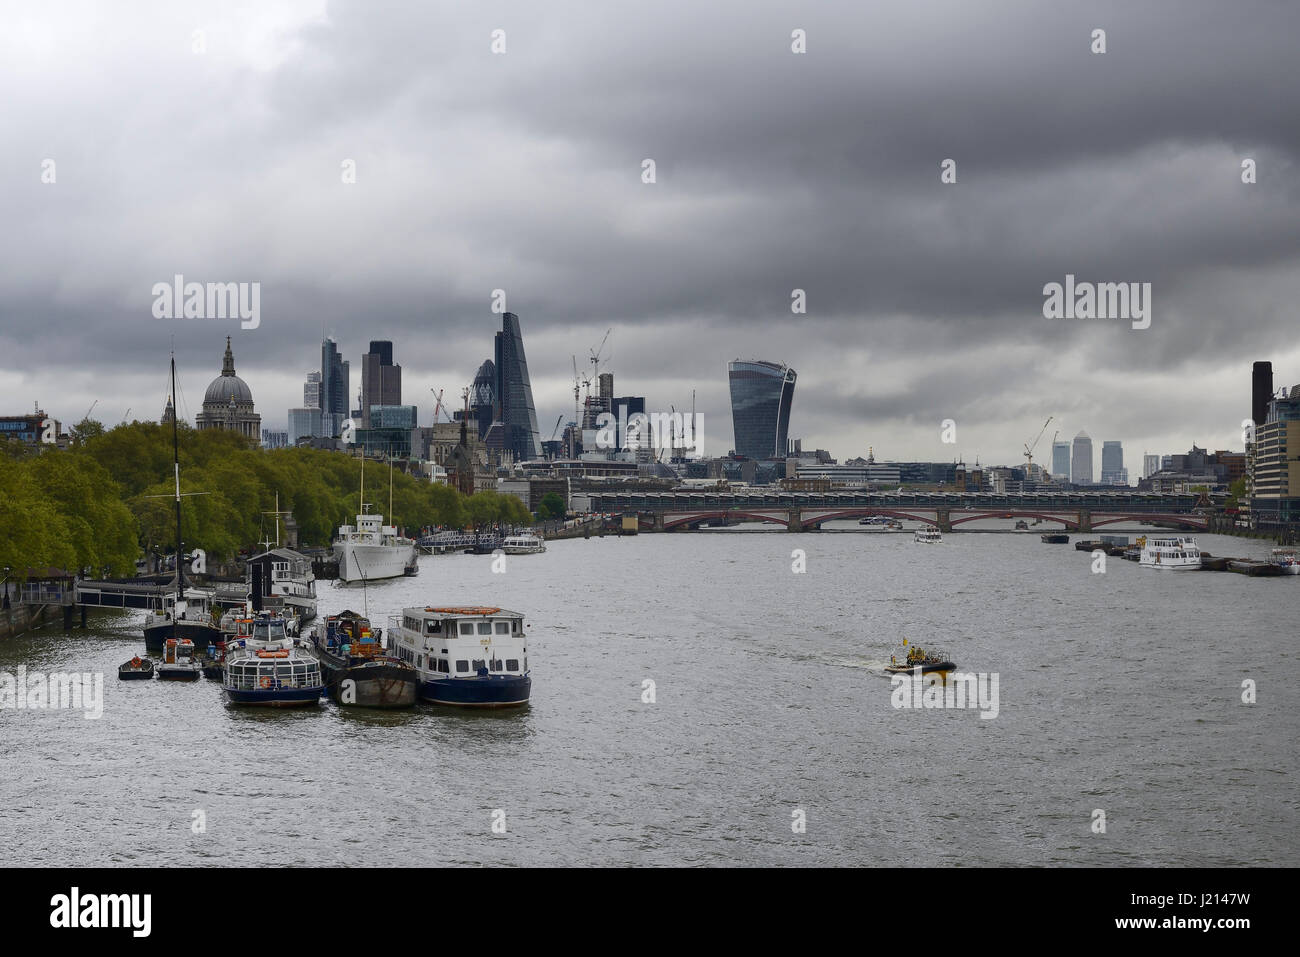 Dark clouds over the financial district of London - Stock Image